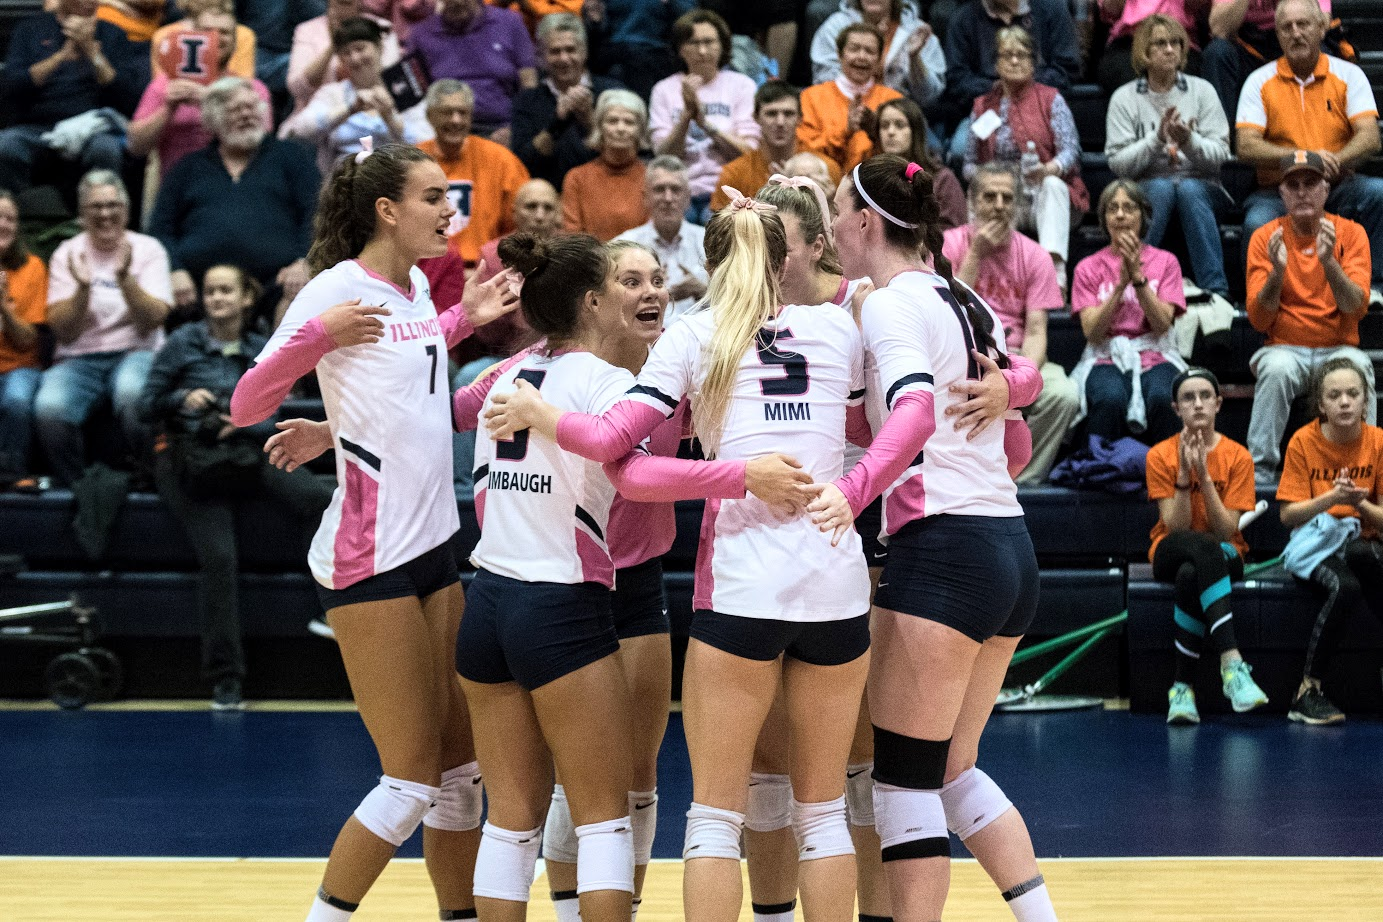 The Illini celebrate after scoring a point vs Ohio State at Huff Hall on Saturday.